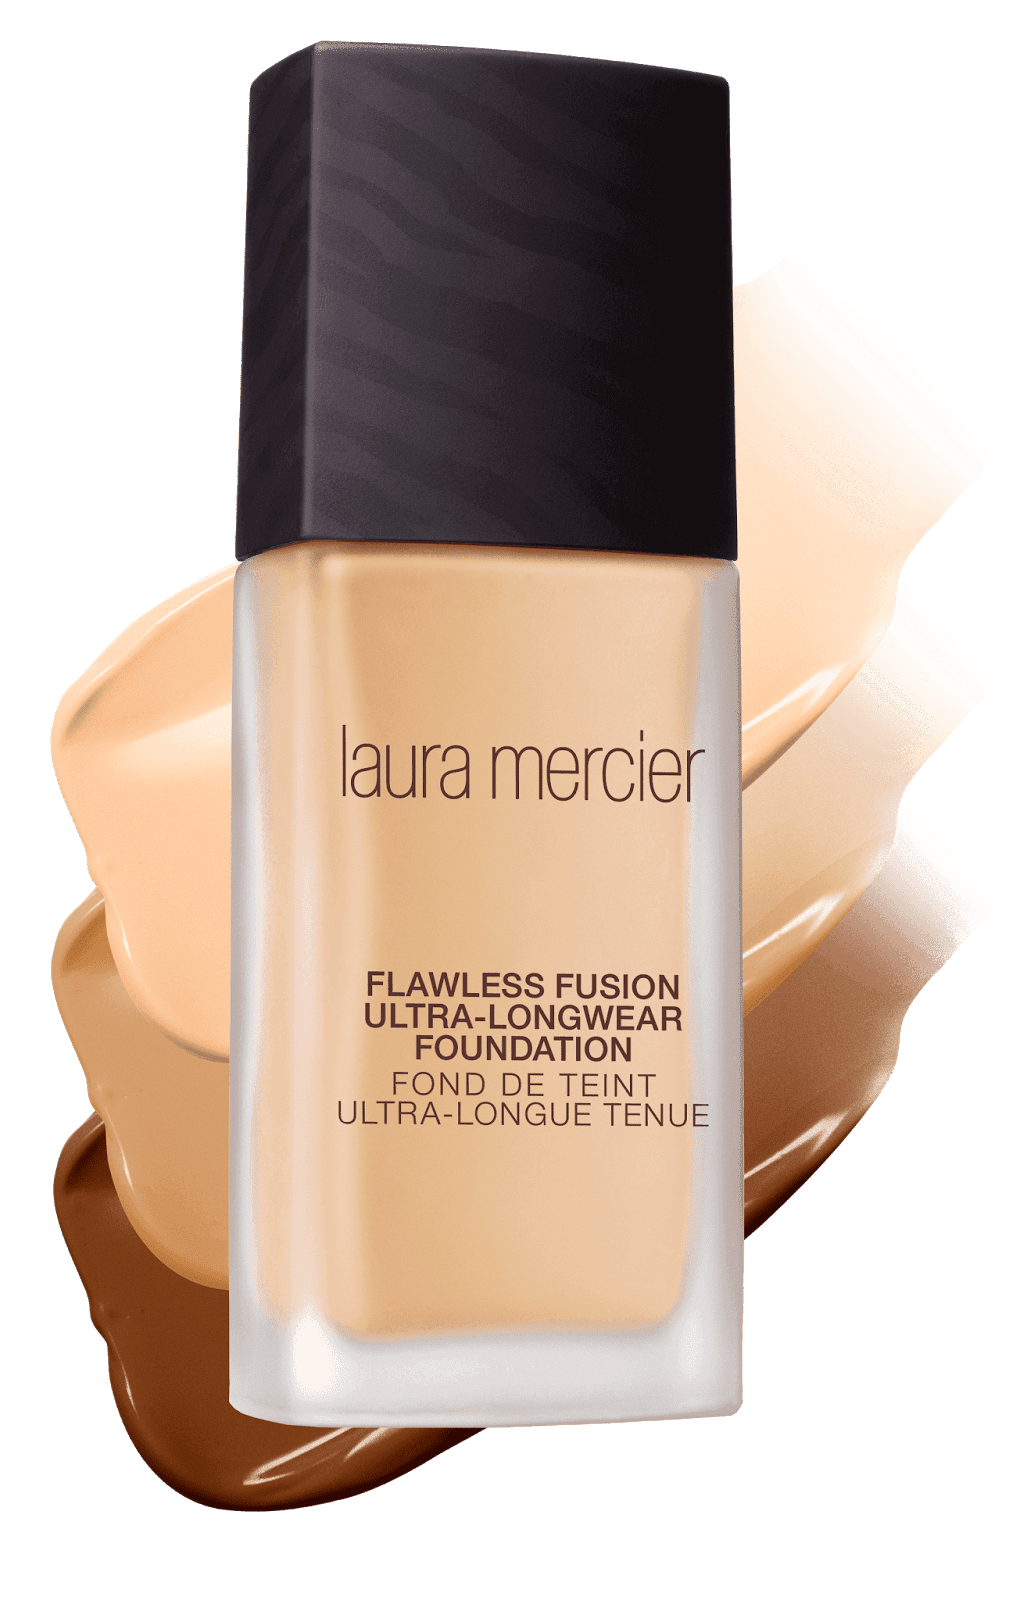 Review Laura Mercier Flawless Fusion Ultra Longwear Foundation Evergreen Reed Diffuser Set Serenity Dream 30 Ml 30ml 4800 This New From Is The Perfect Blend Of Coverage Blendability And Comfort It A High Performance That